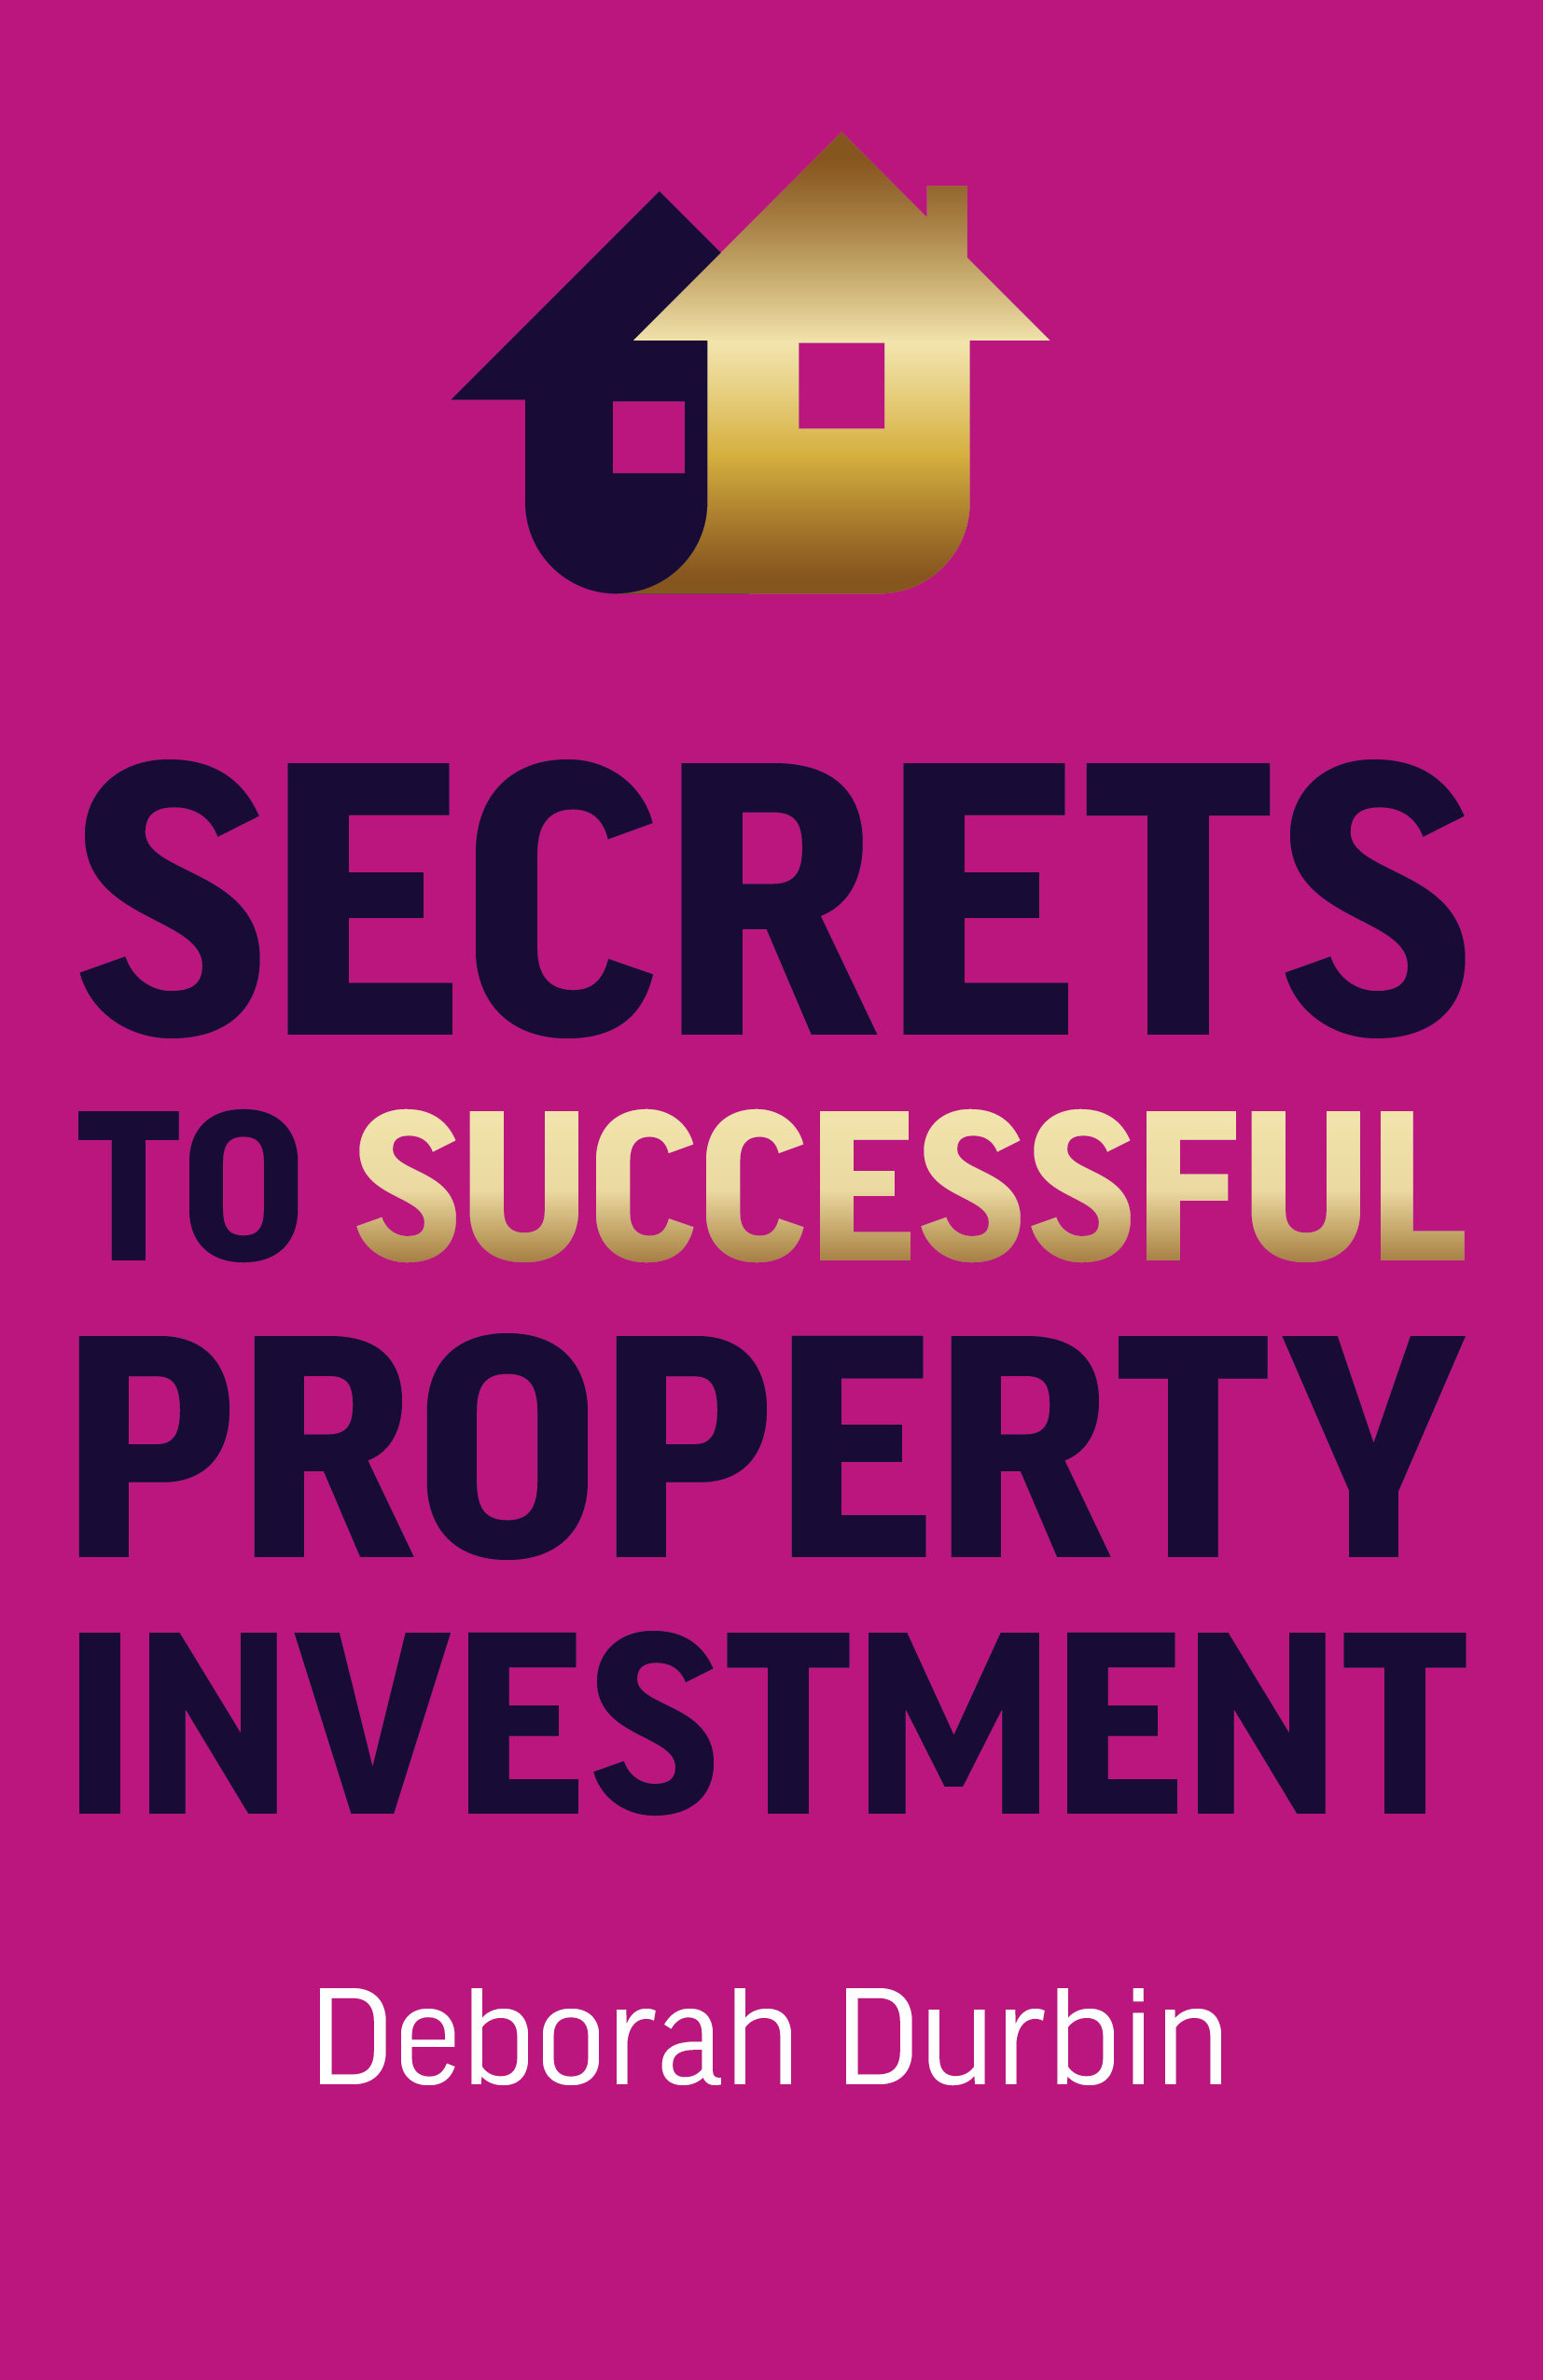 A former Professional Builder columnist is sharing her insights on property investment in a new book